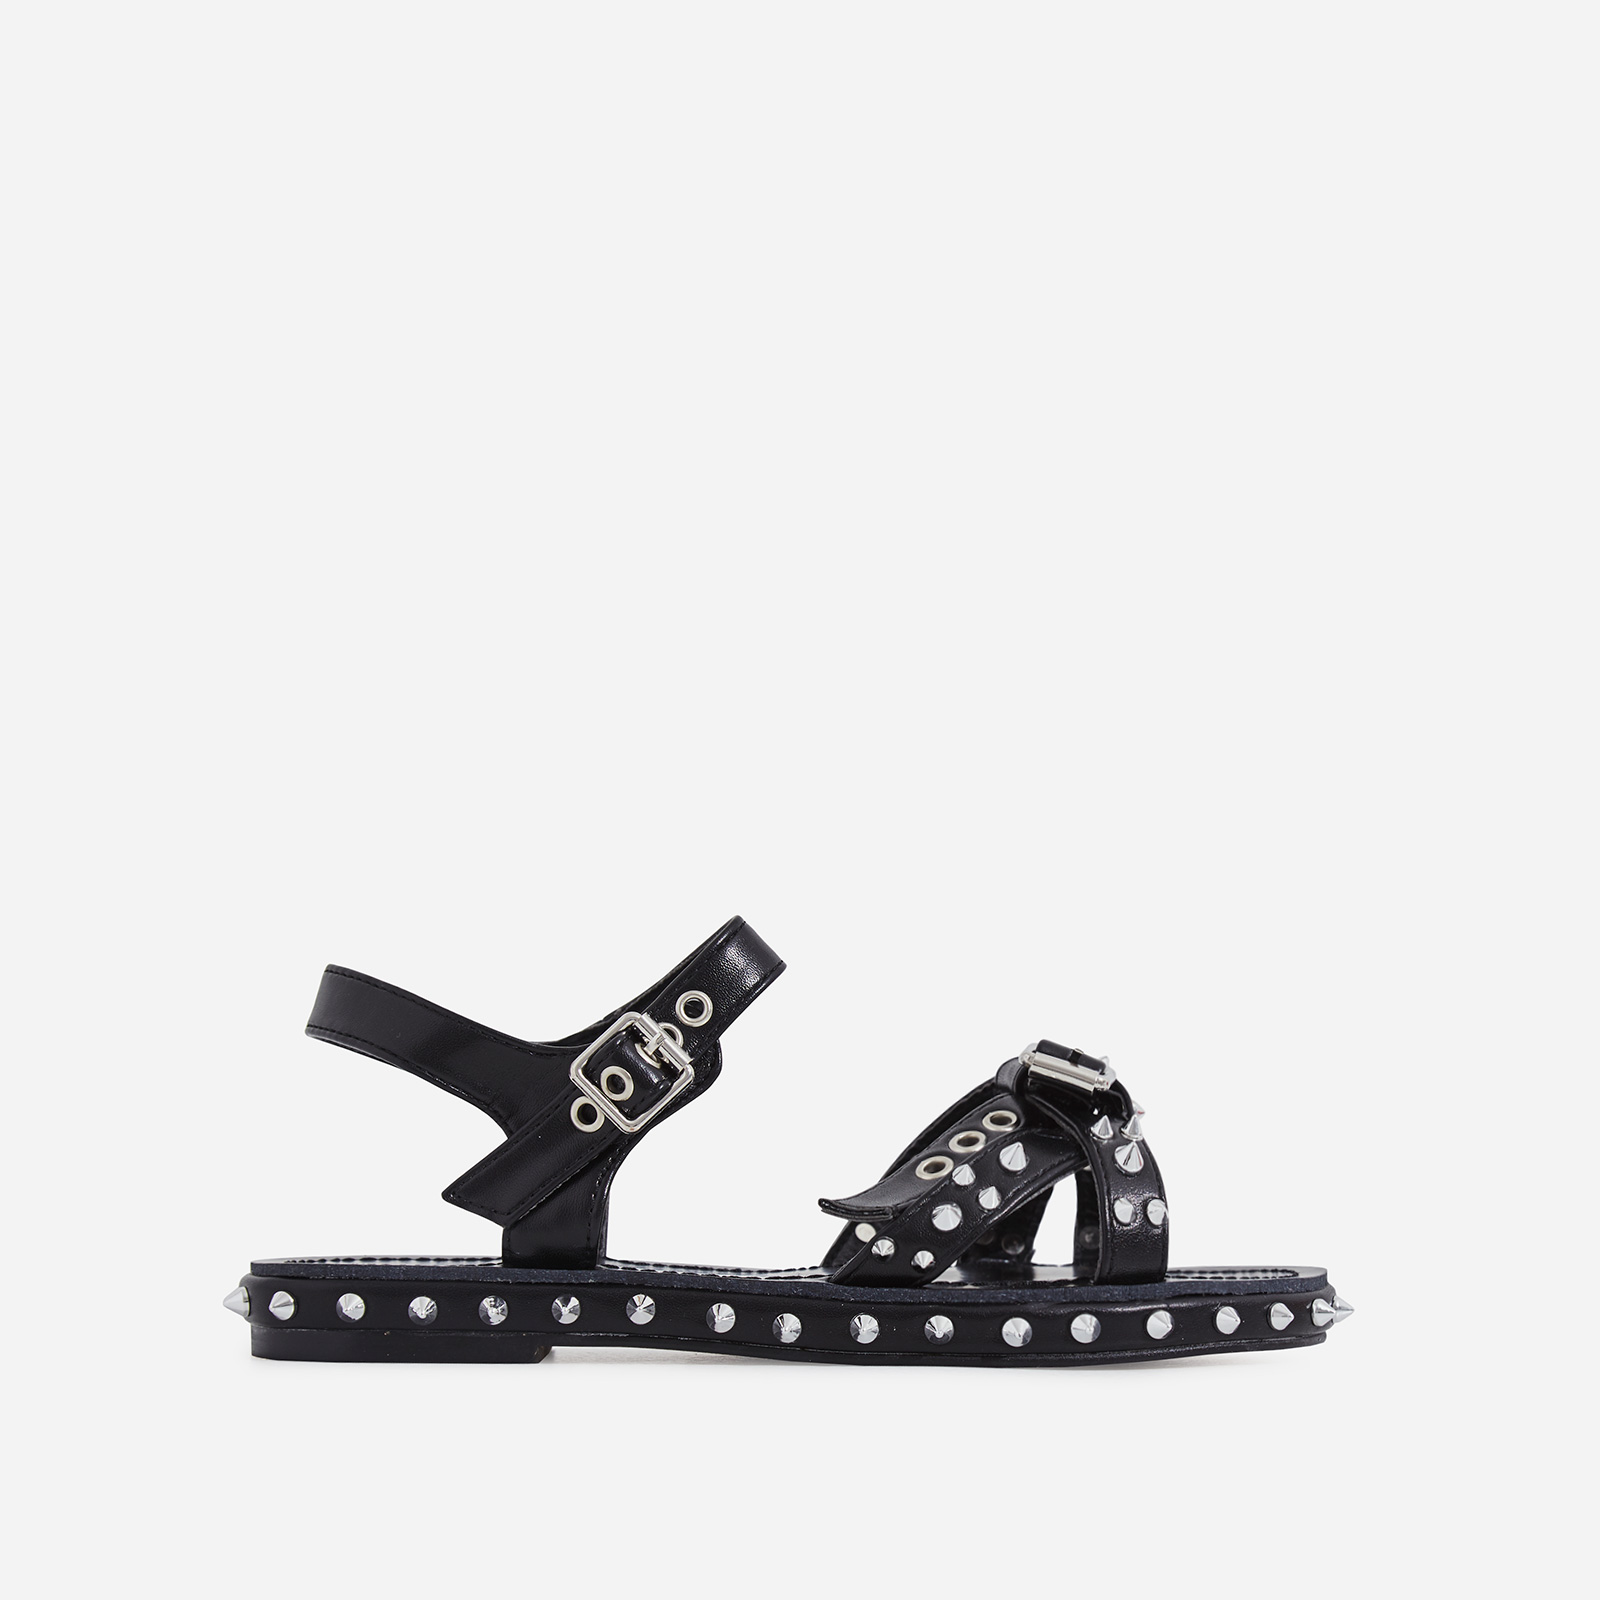 Gerry Studded Detail Sandal In Black Faux Leather